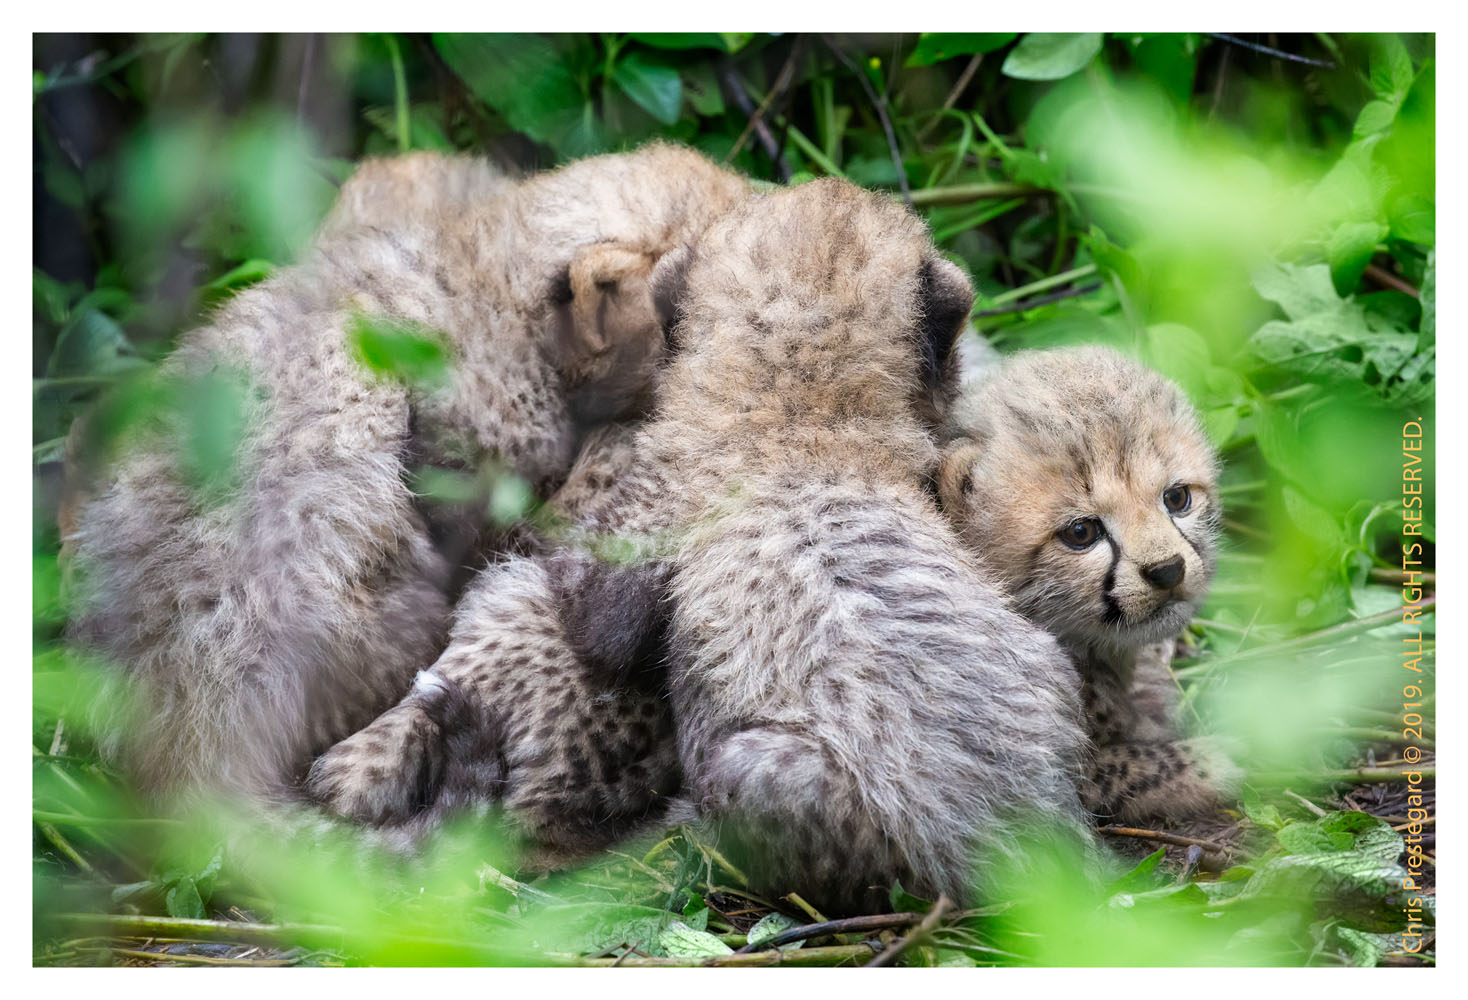 Cheetah cubs at Ndutu, Tanzania Feb. 2019